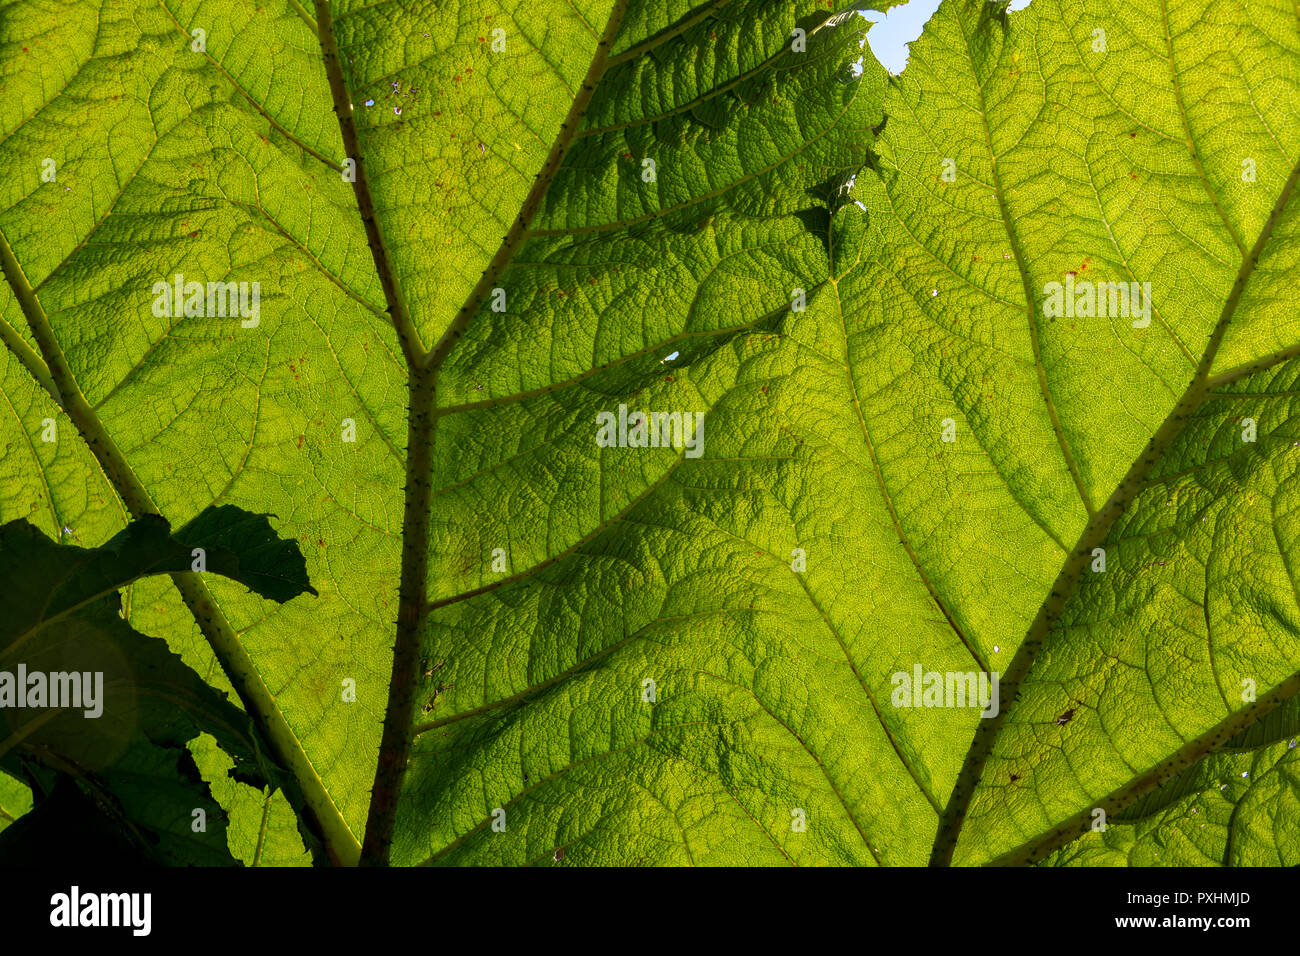 Giant leaves of Gunnera manicata, commonly known as giant rhubarb. Every part of the huge plant has spiky thorns. Close up photo shows leaf structure. Stock Photo